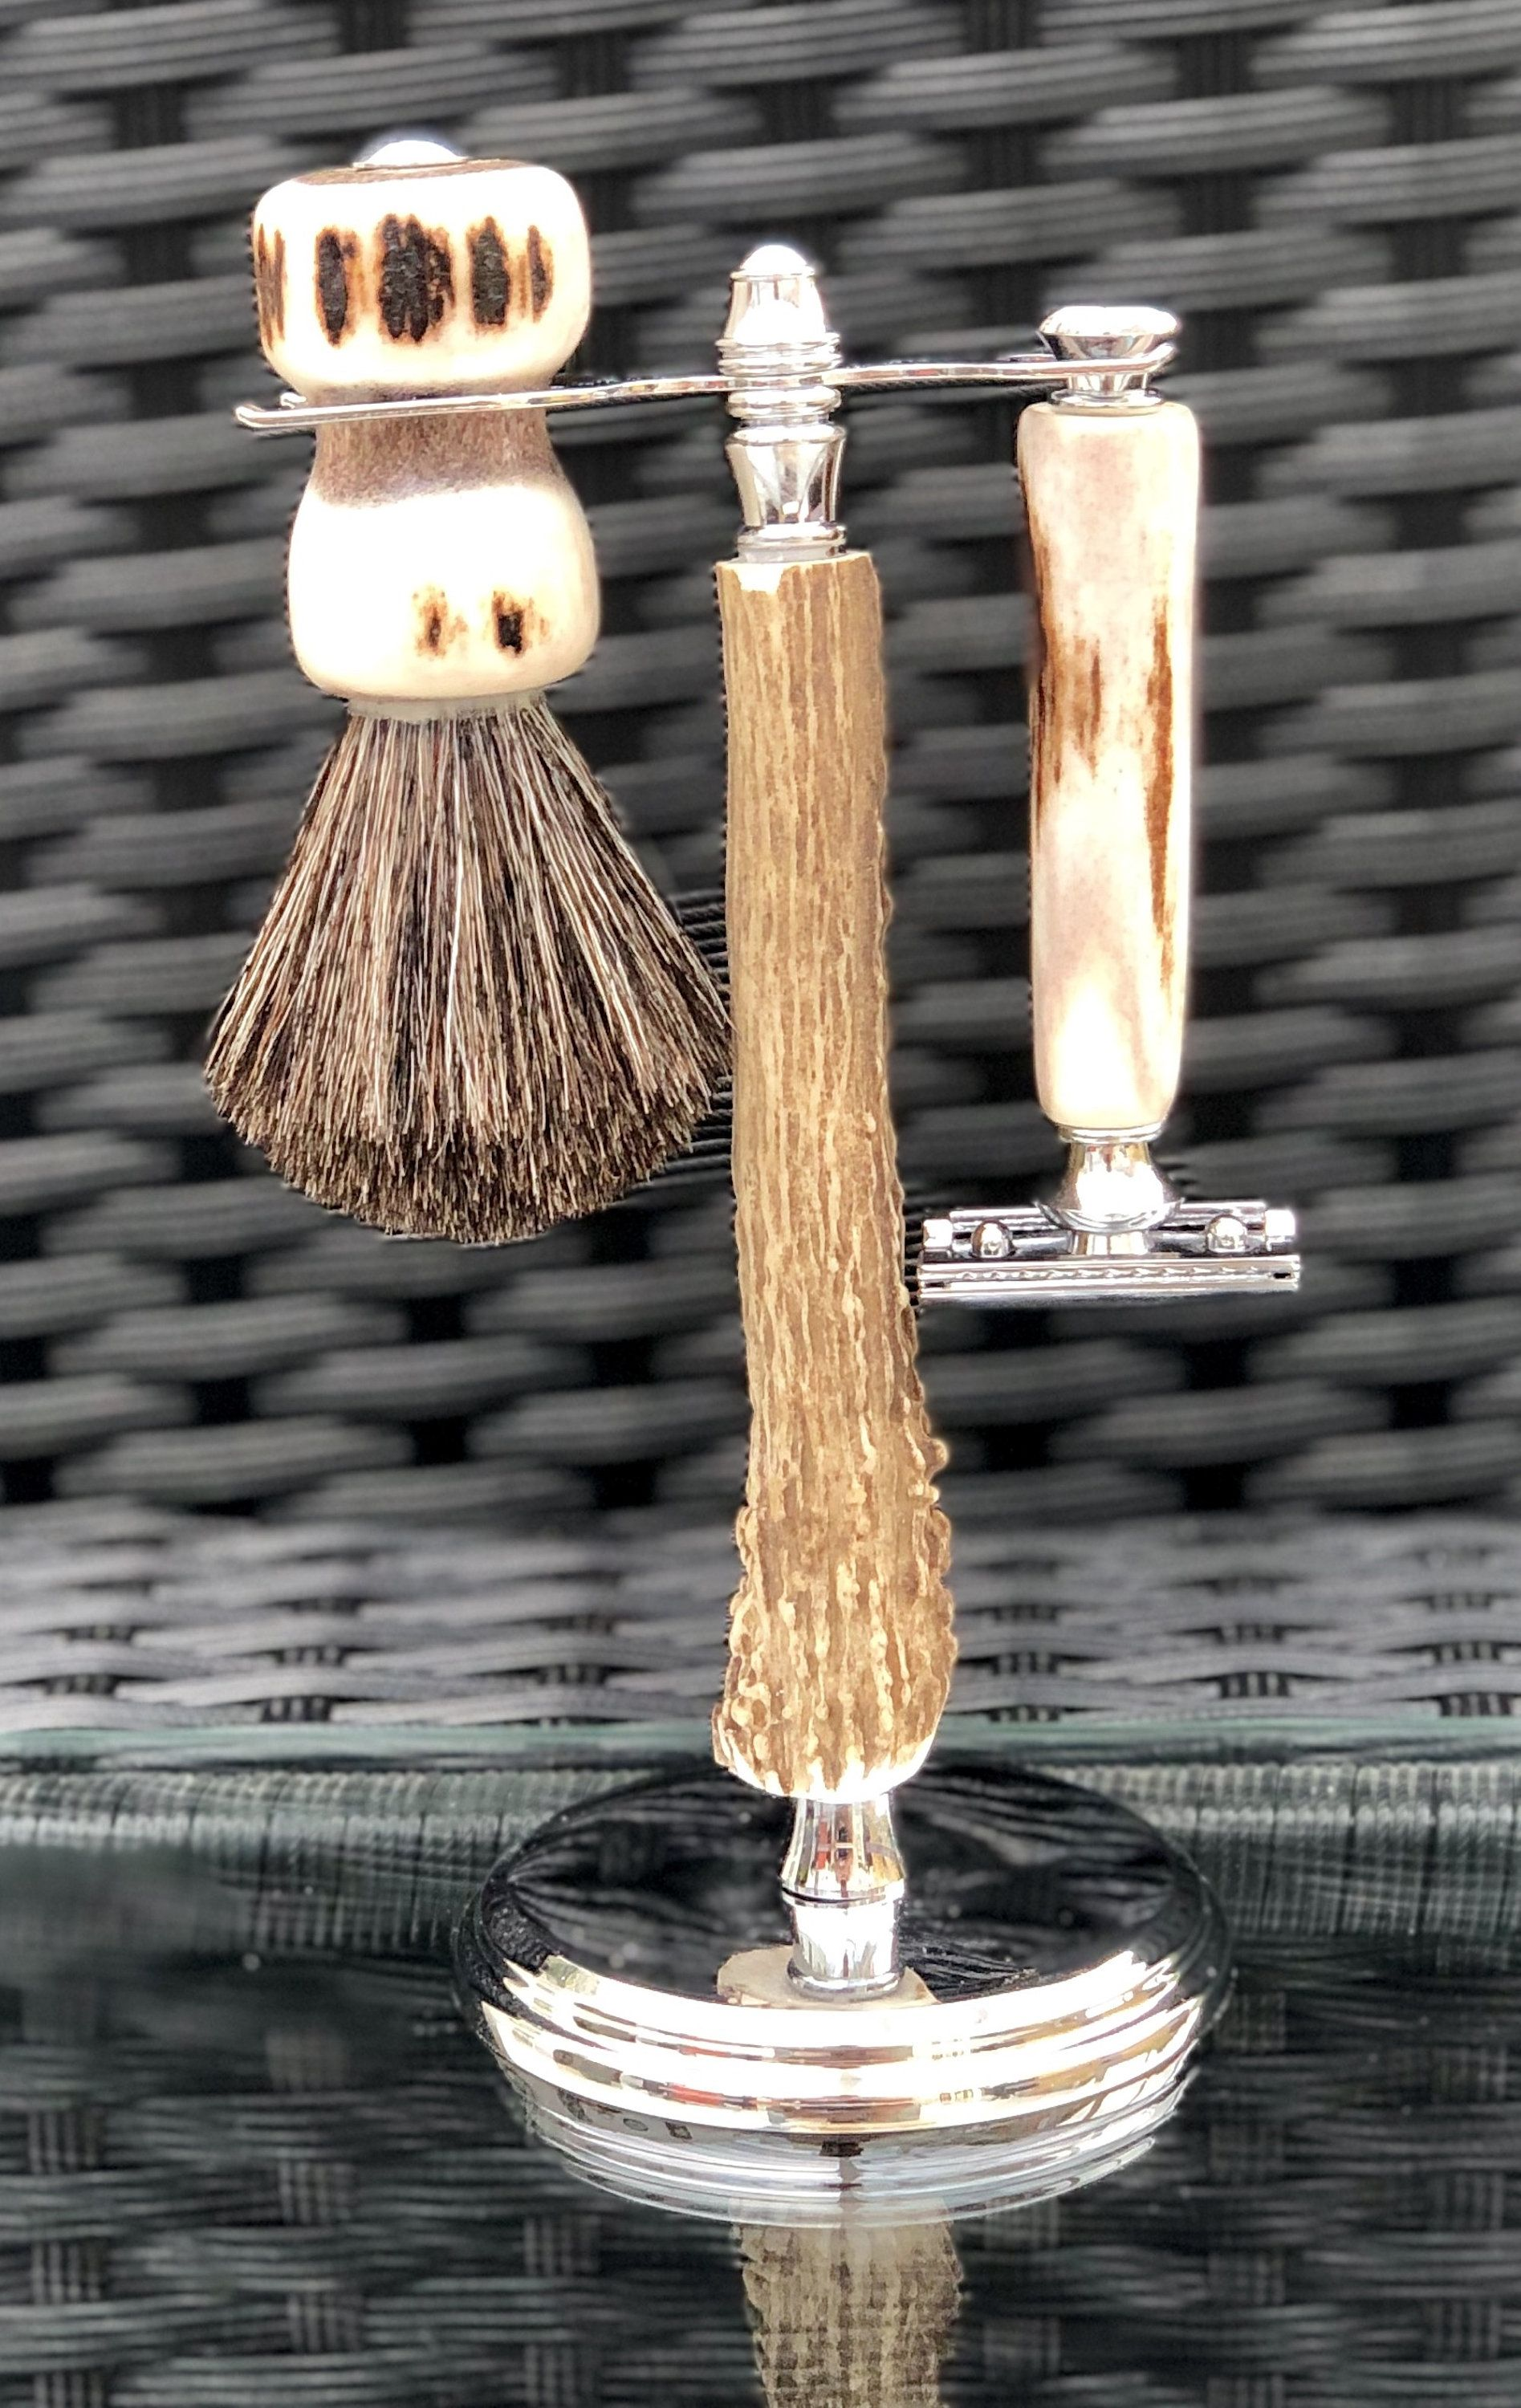 Handcrafted Red Deer Shaving Set with Chrome Accents and